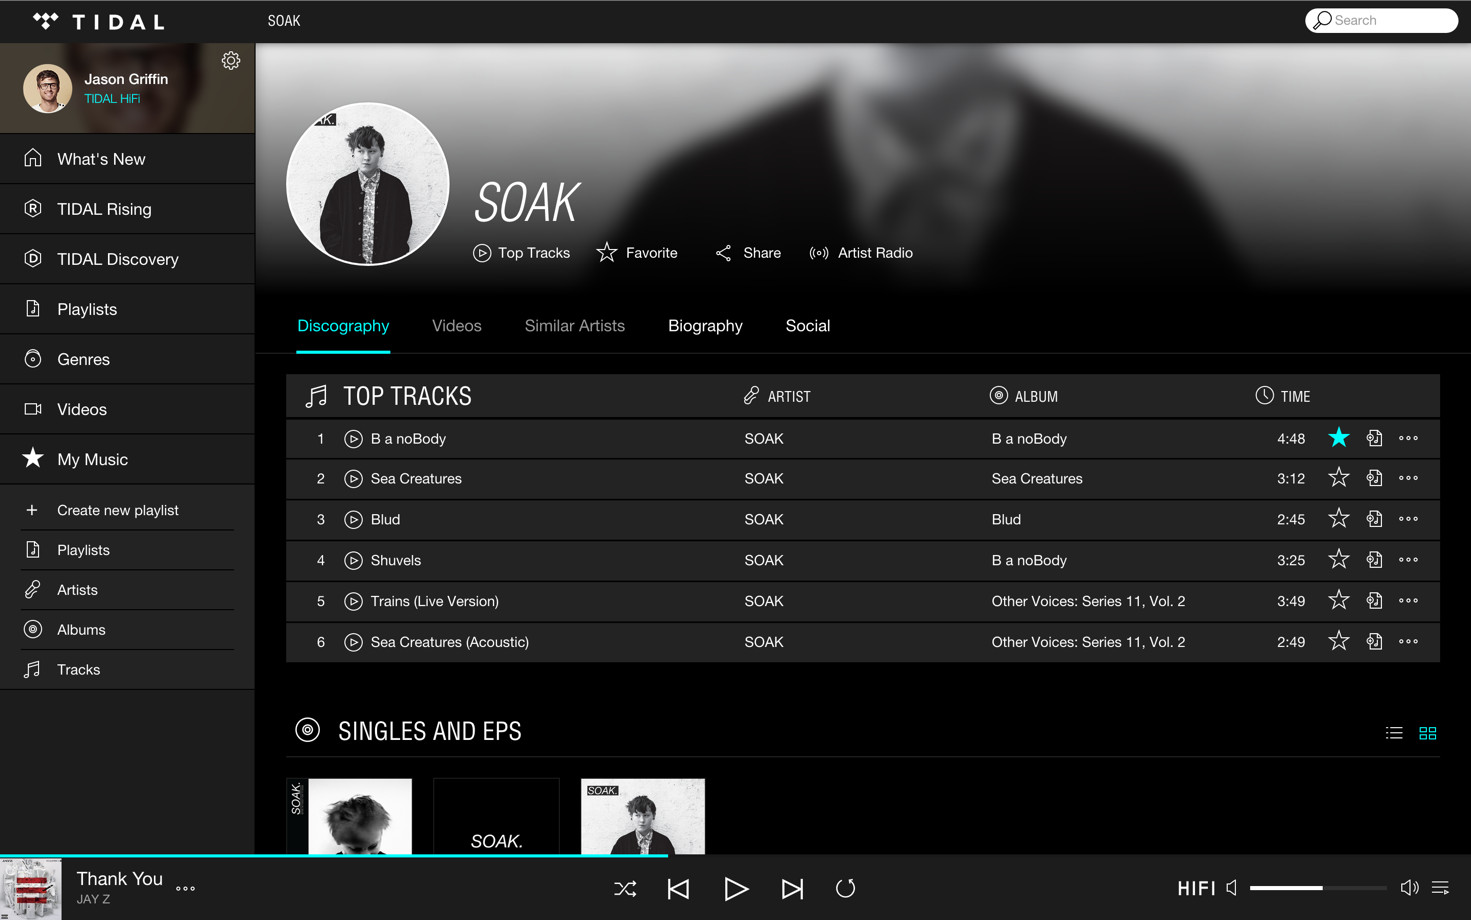 Jay Z's music service has new apps, concert tickets, and a lot to